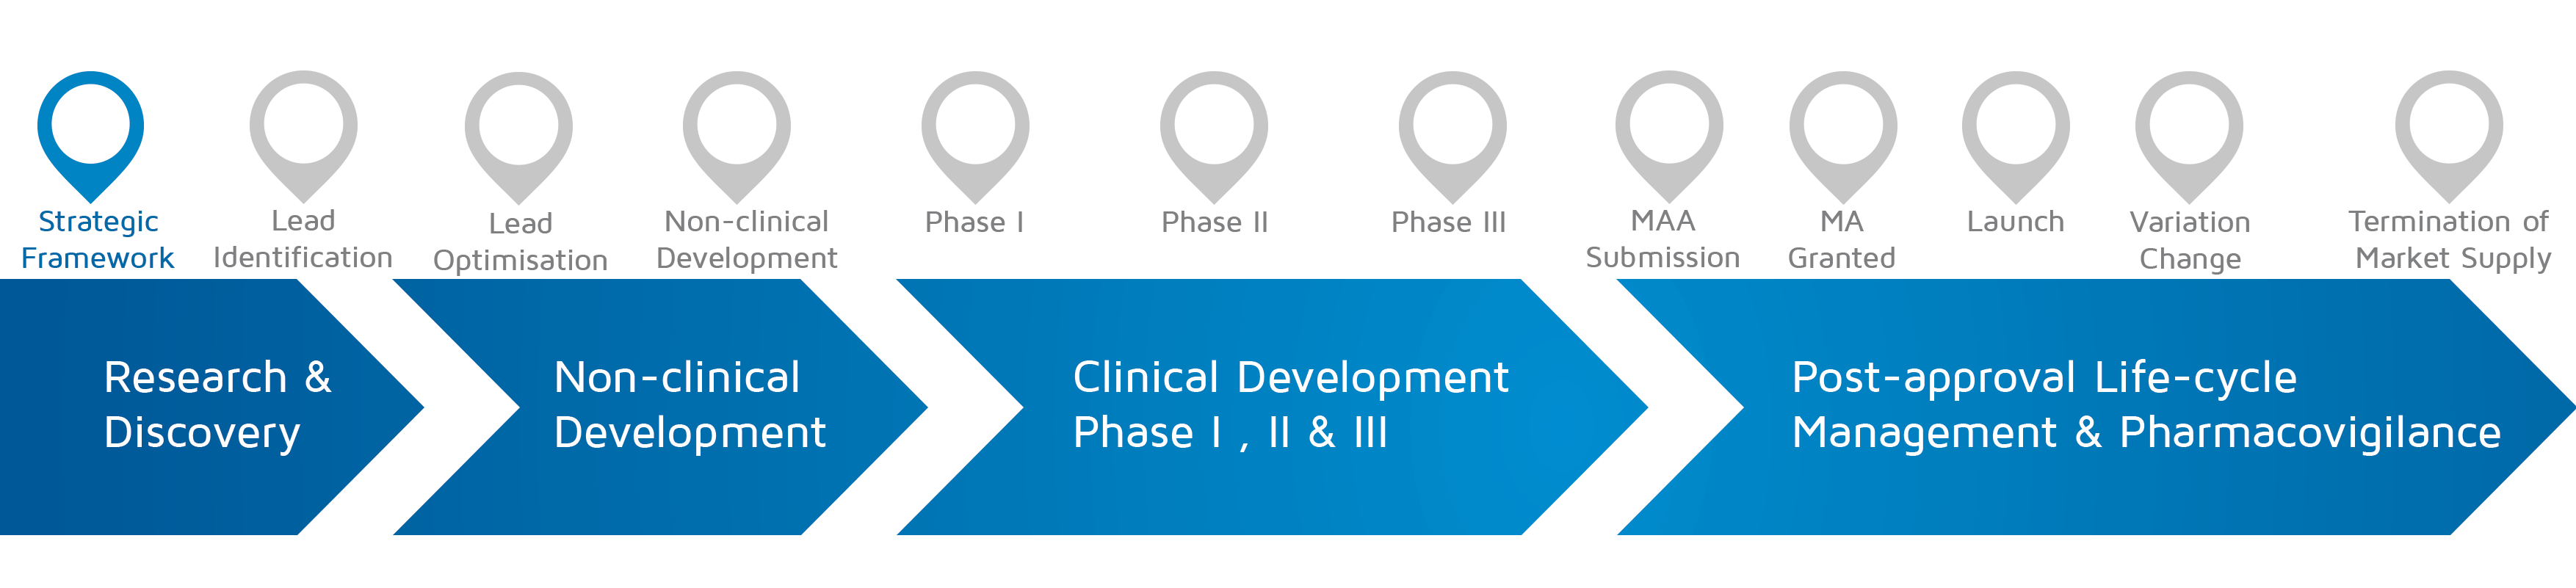 A visual representation of in which phase of medicines research and development process an activity takes place with strategic framework highlighted.